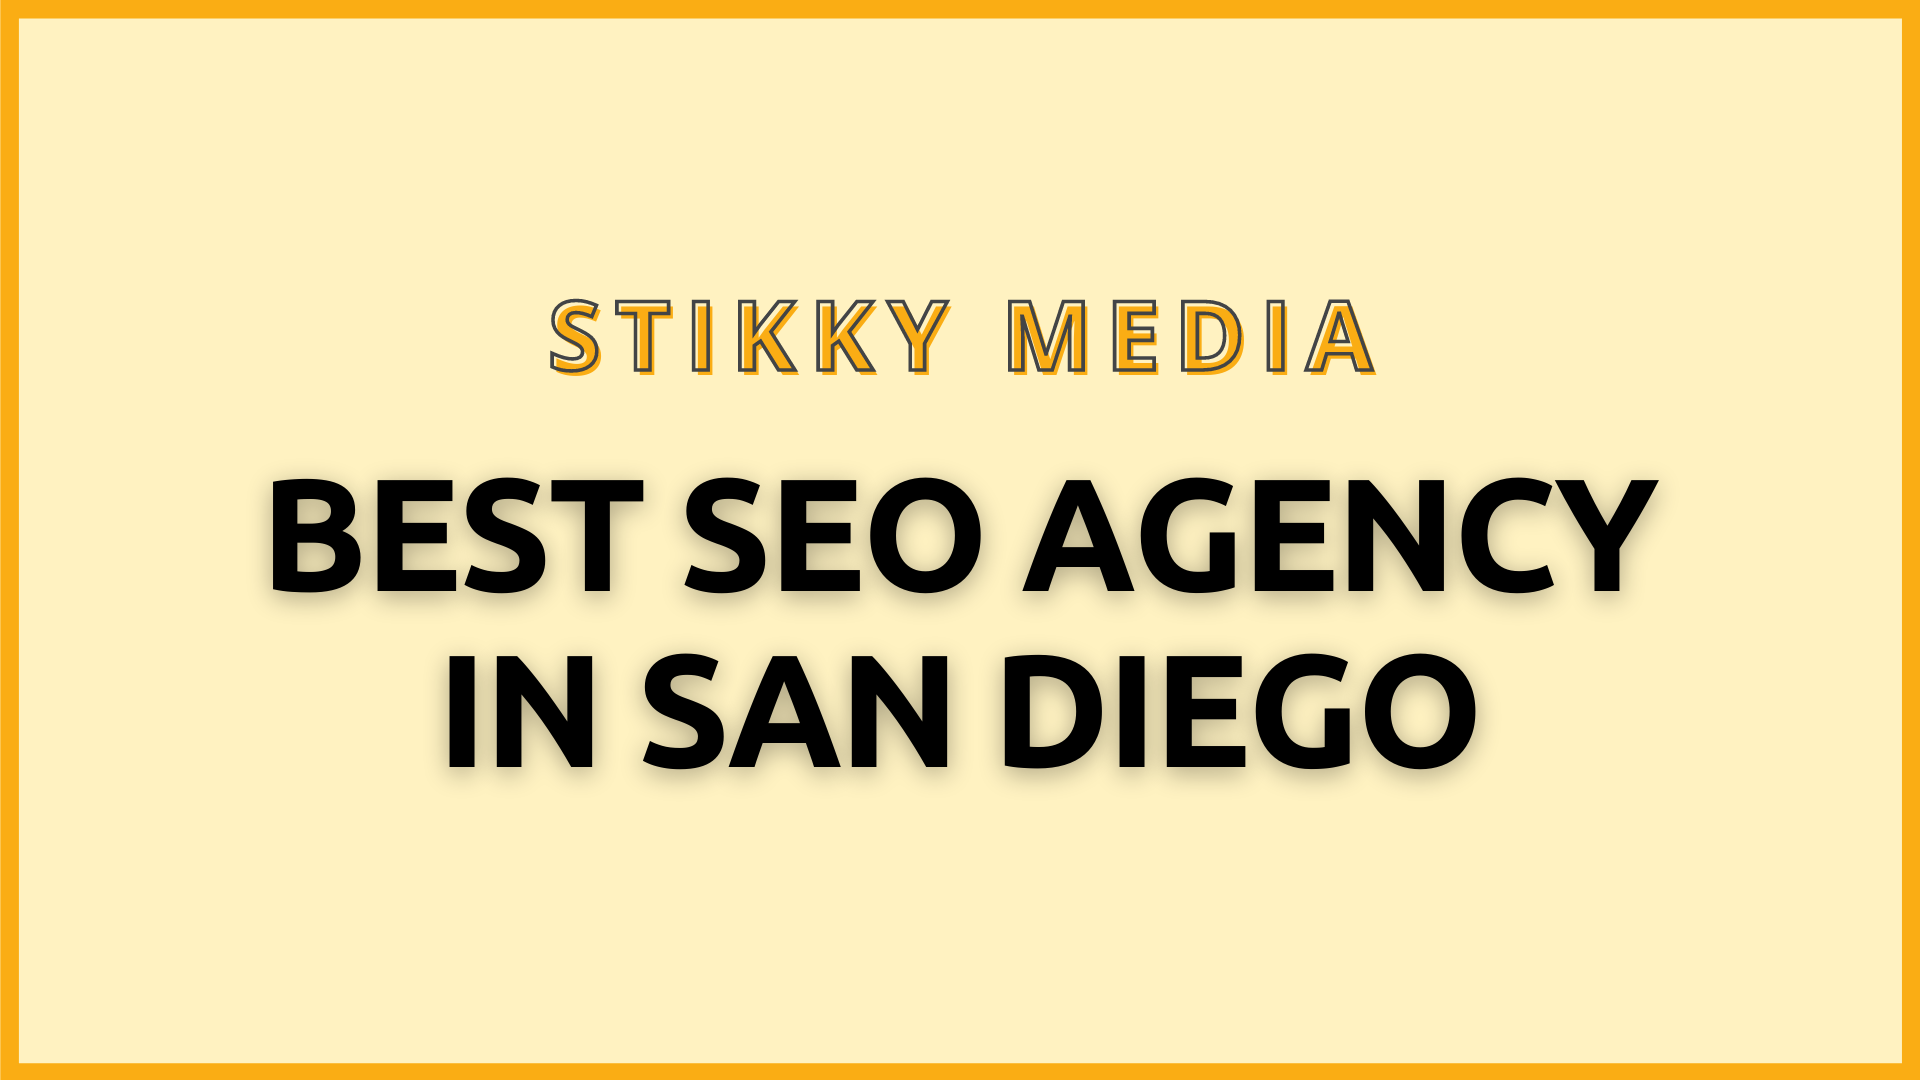 SEO services in San Diego - Stikky Media